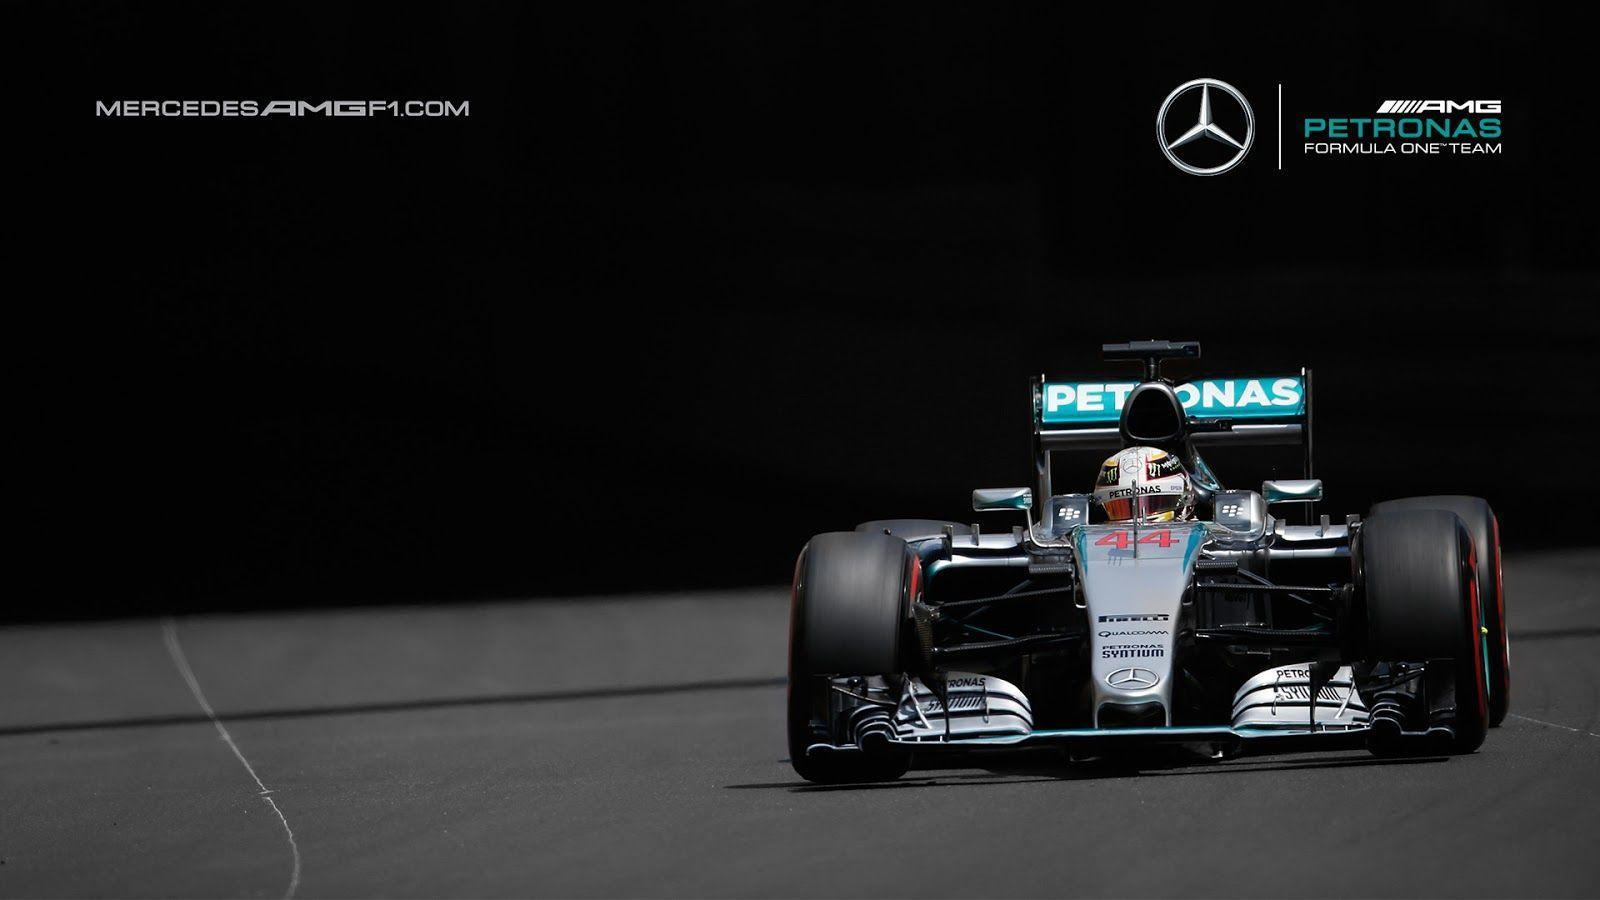 Mercedes F1 Wallpapers Wallpaper Cave Images, Photos, Reviews